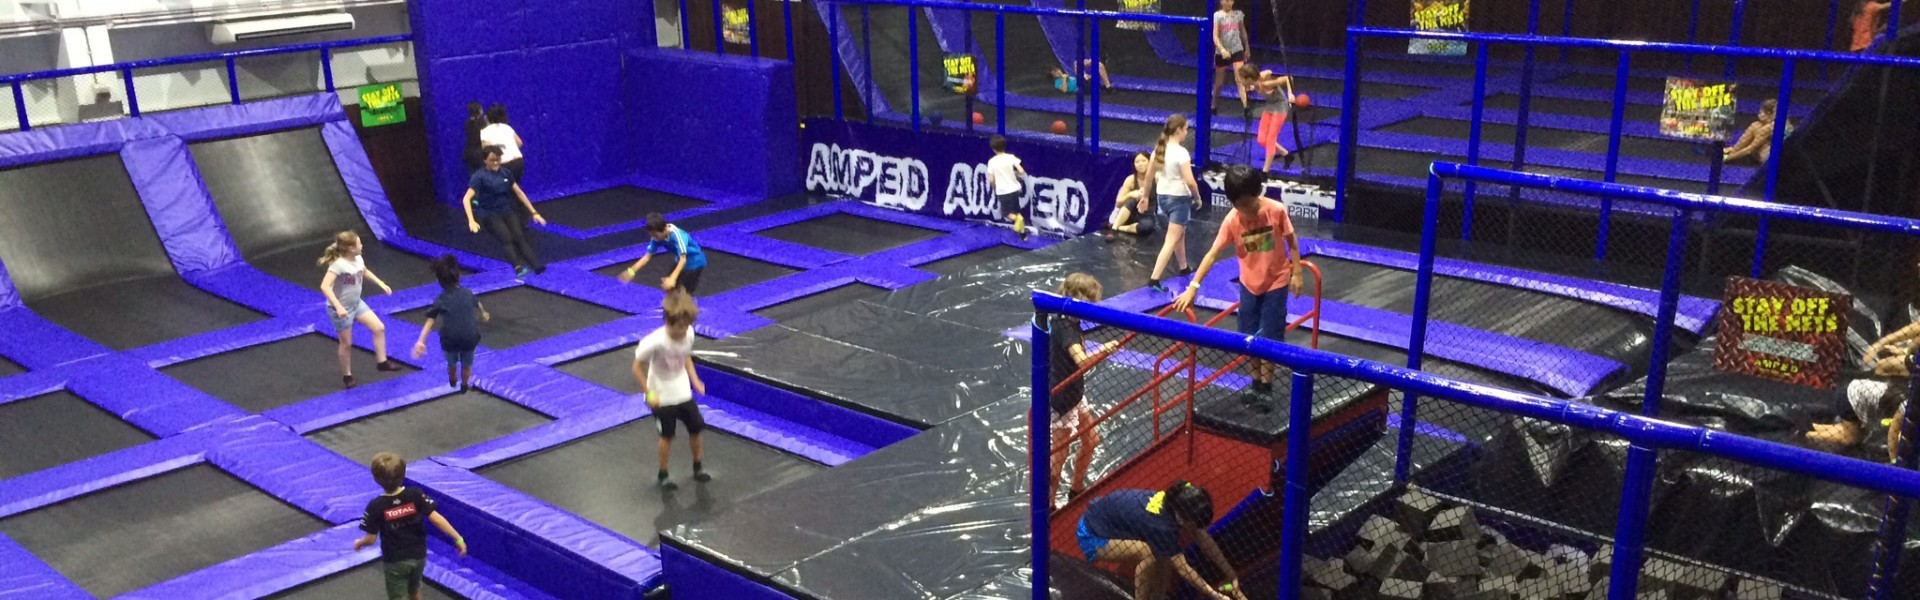 AMPED Trampoline Park, Malaysia, KL